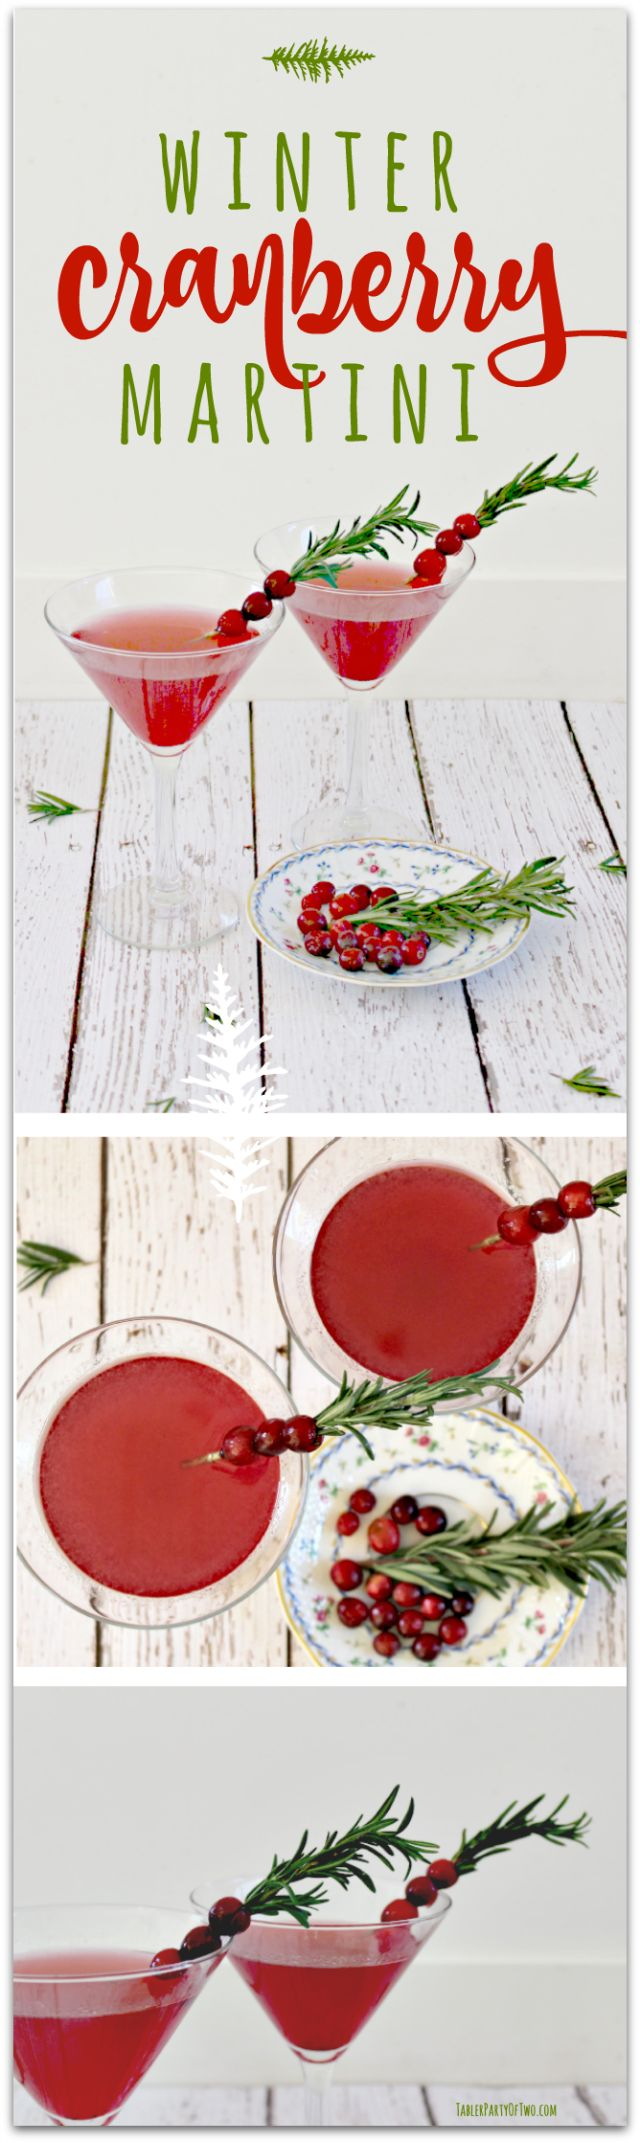 The Winter Cranberry Martini is as beautiful as it is delish! It's perfect for your Thanksgiving gathering or any holiday soiree!